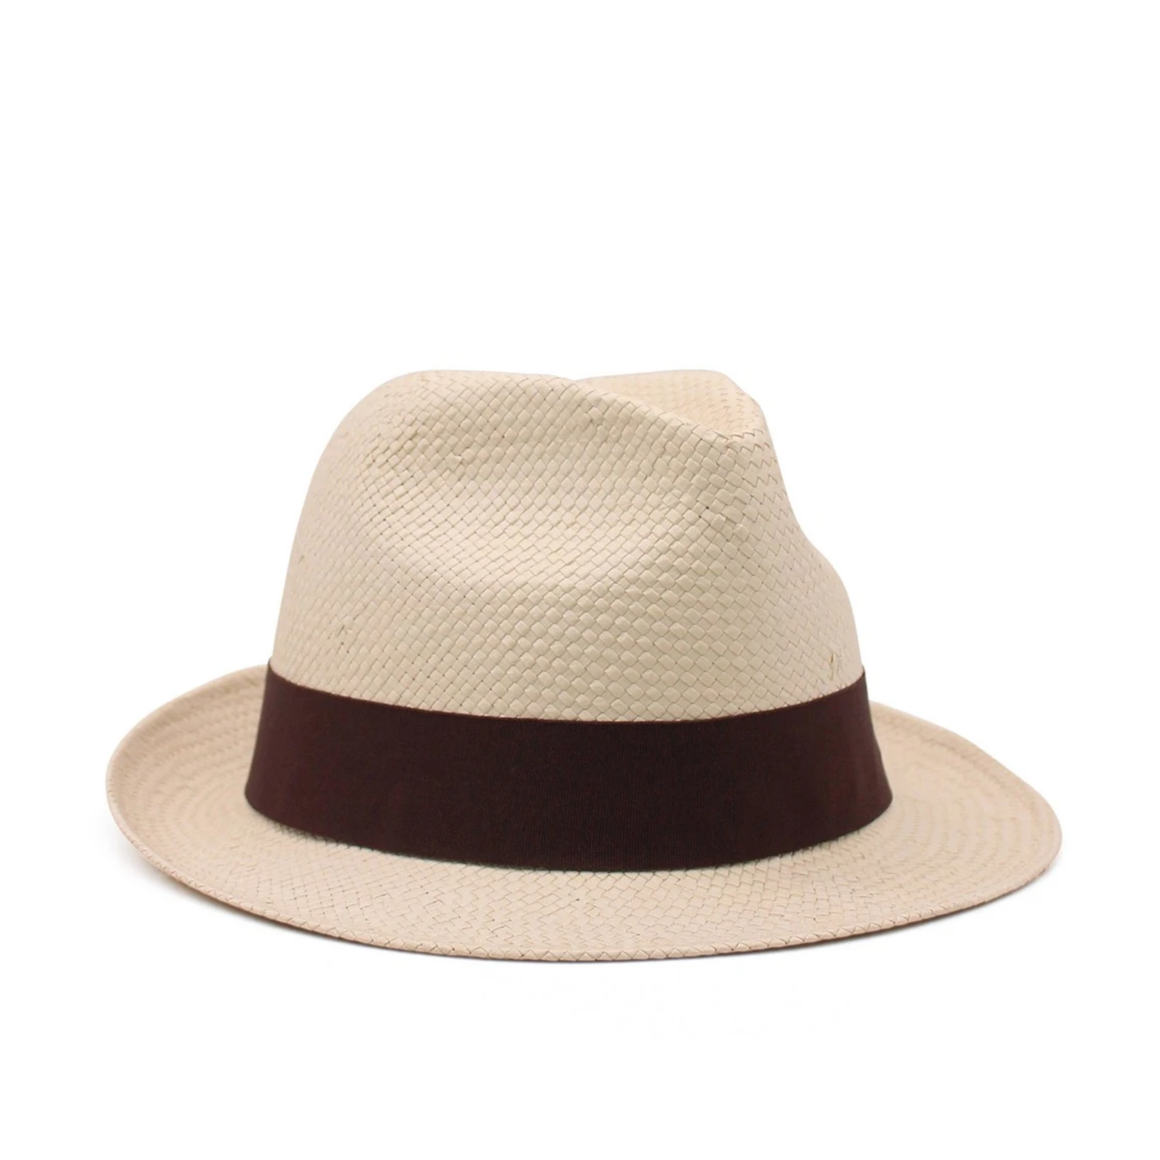 BEIGE & BROWN TRILBY - 100% STRAW